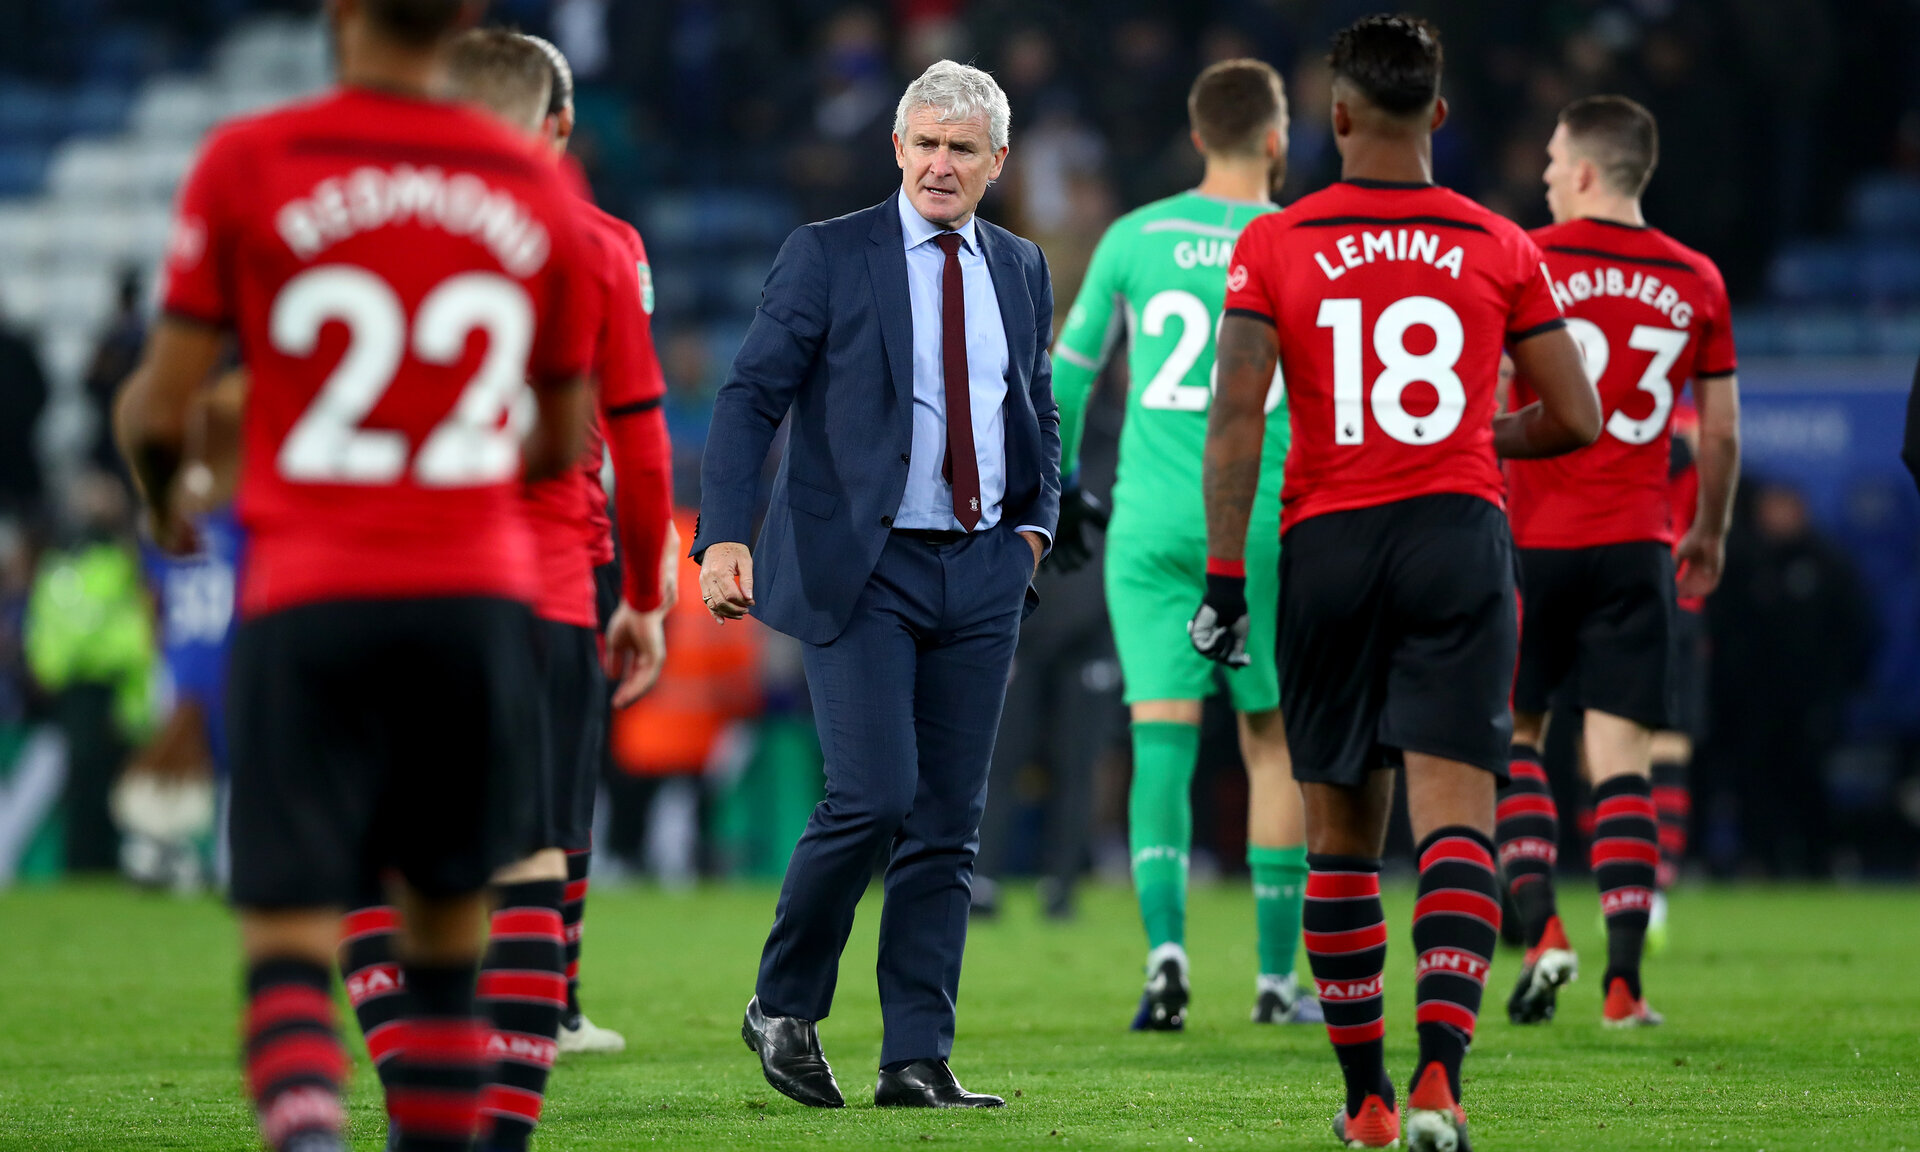 LEICESTER, ENGLAND - NOVEMBER 27: Mark Hughes of Southampton during the Carabao Cup Fourth Round match between Leicester City and Southampton at The King Power Stadium on November 27th, 2018 in Leicester, England. (Photo by Matt Watson/Southampton FC via Getty Images)